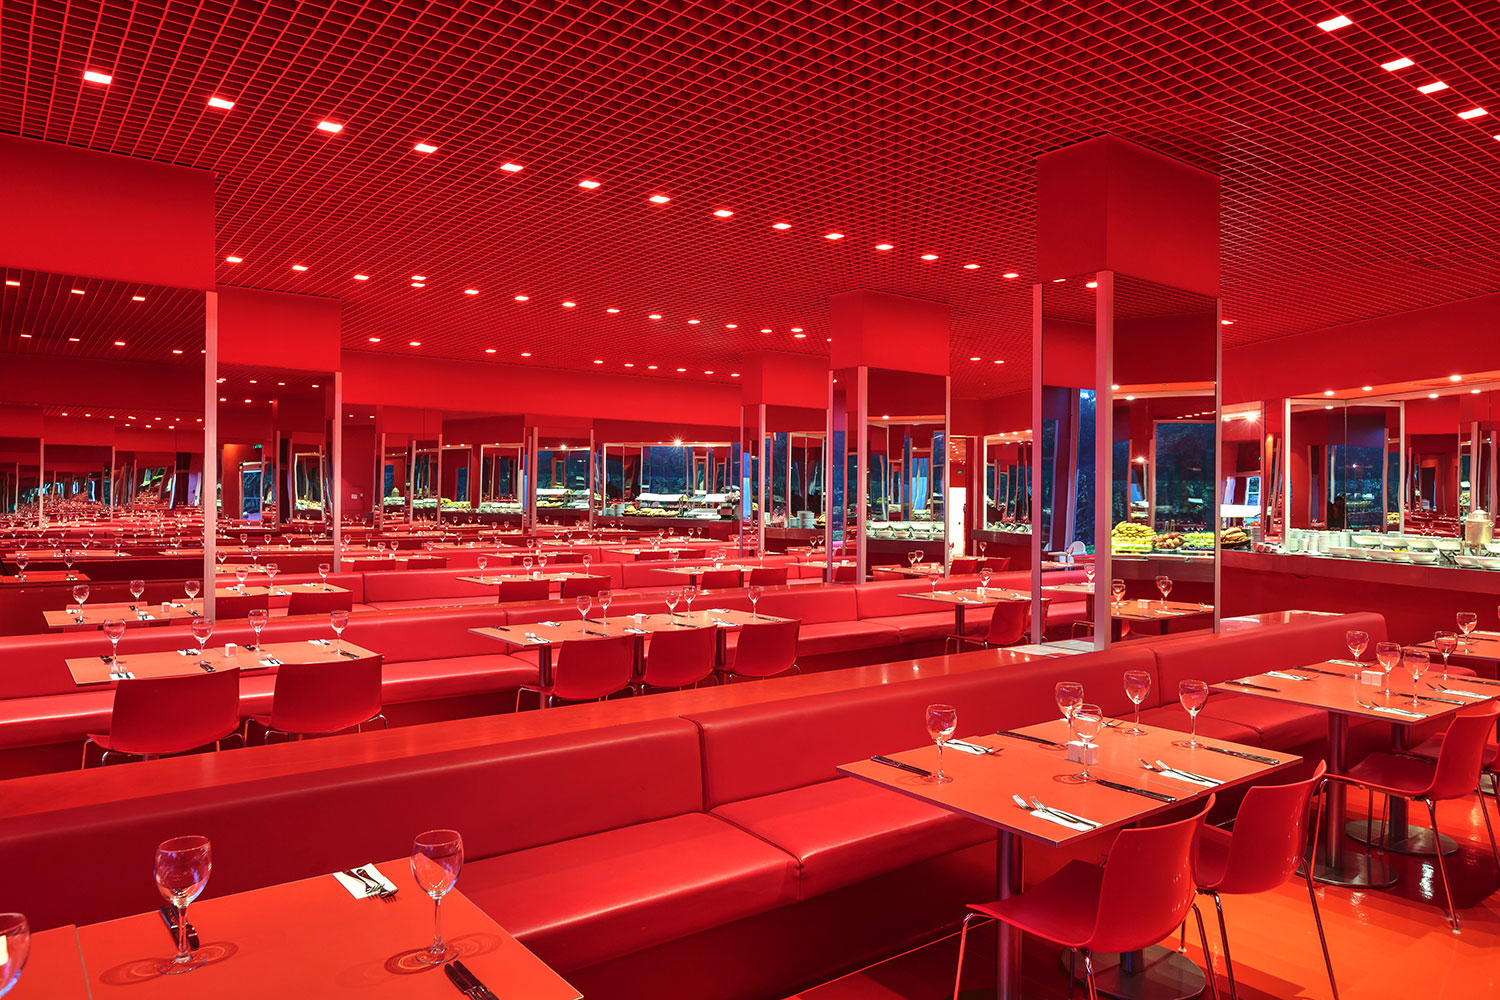 Image red_restaurant3.jpg